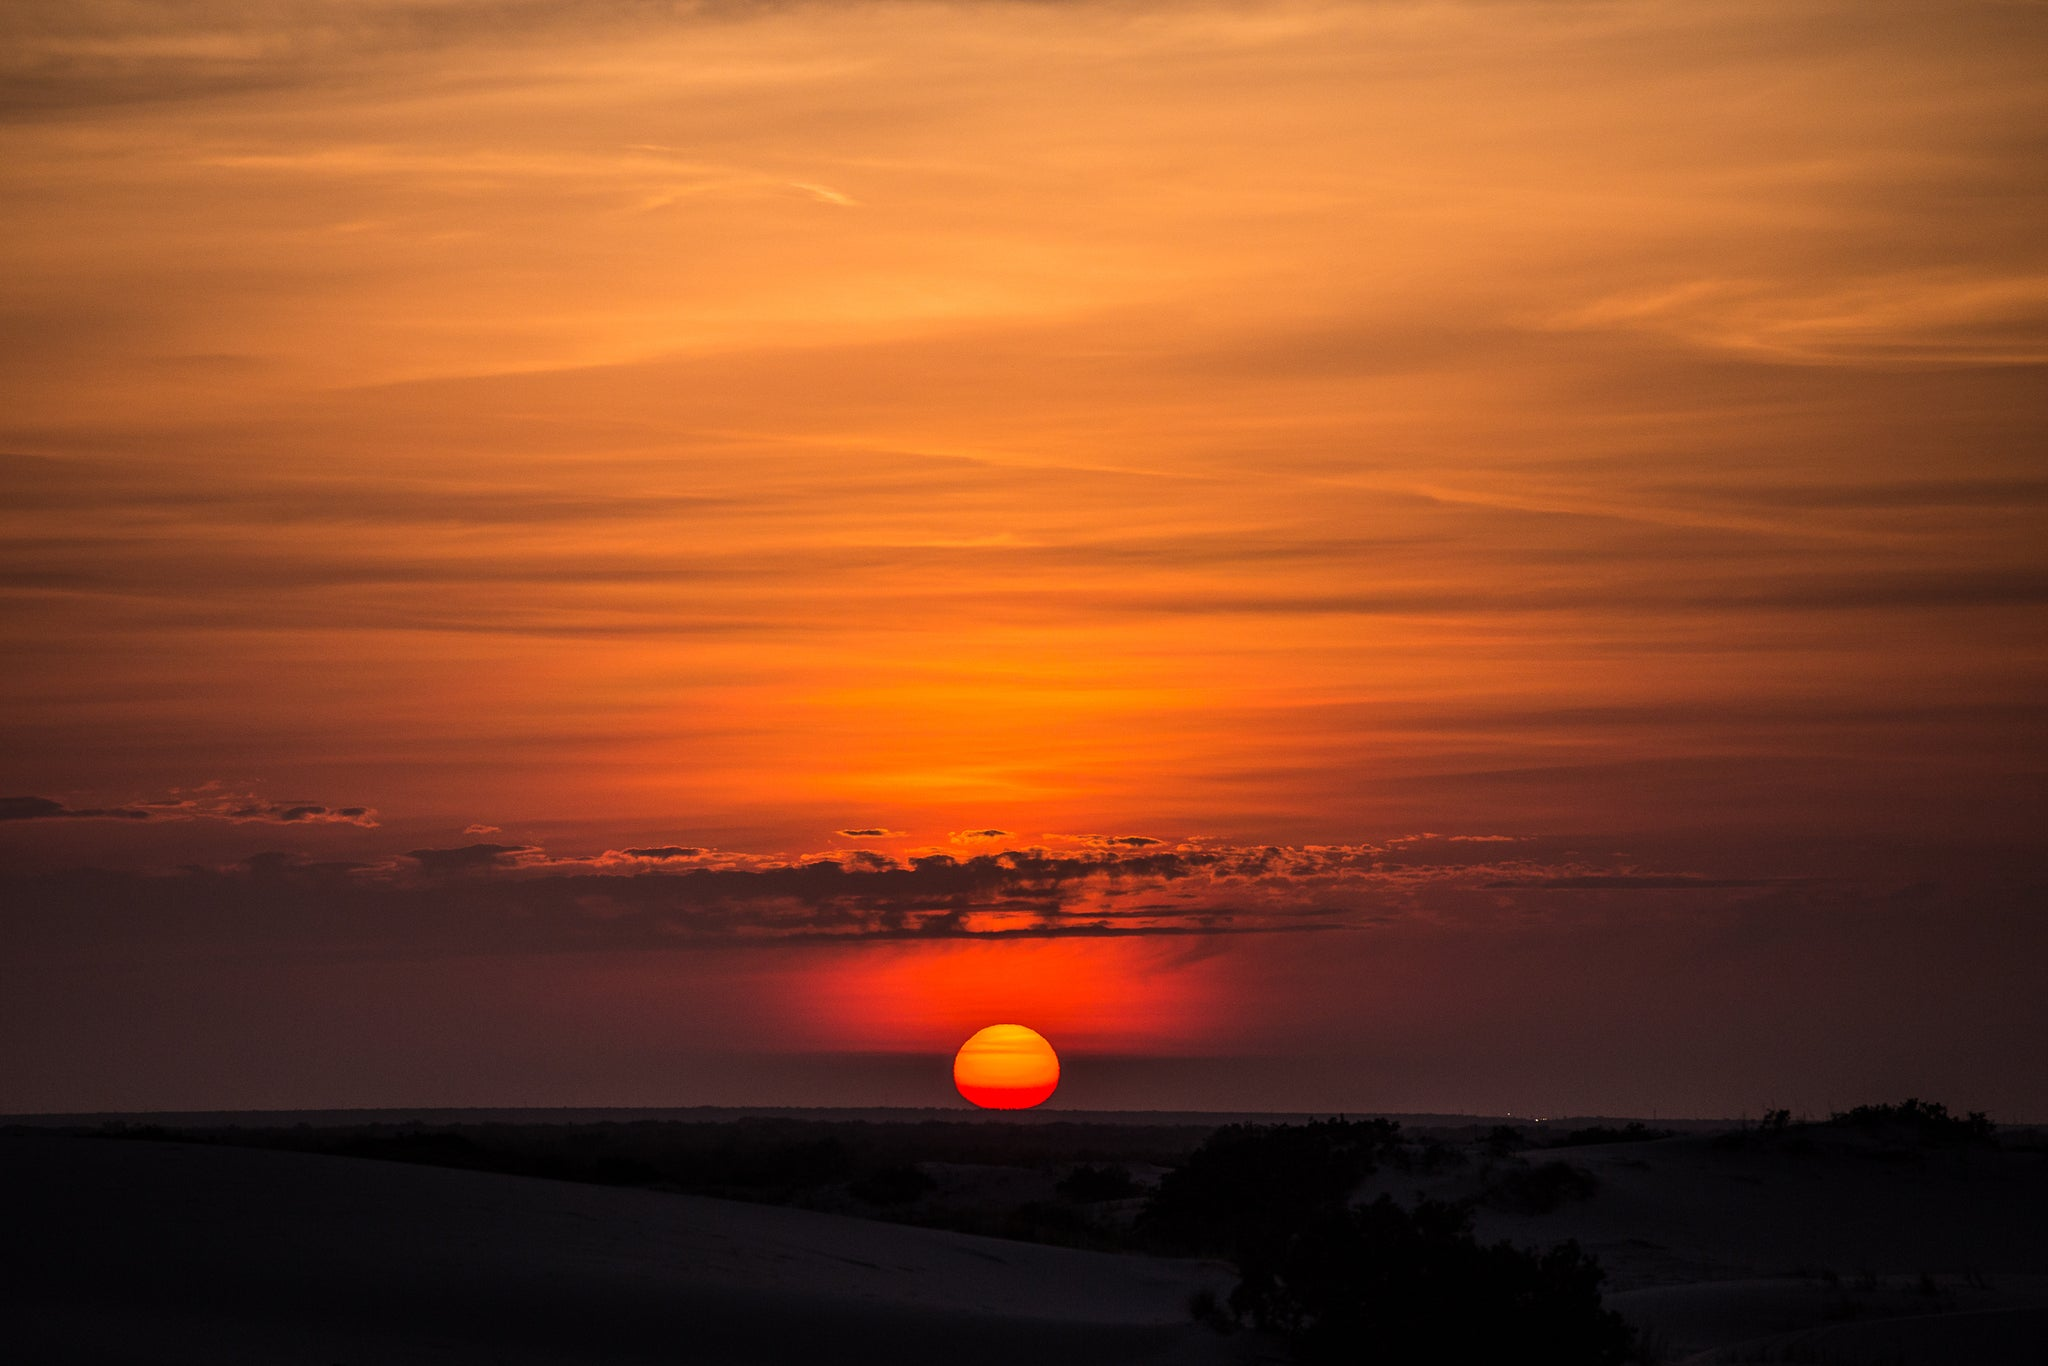 Sunrise at Monahans Sandhills State Park